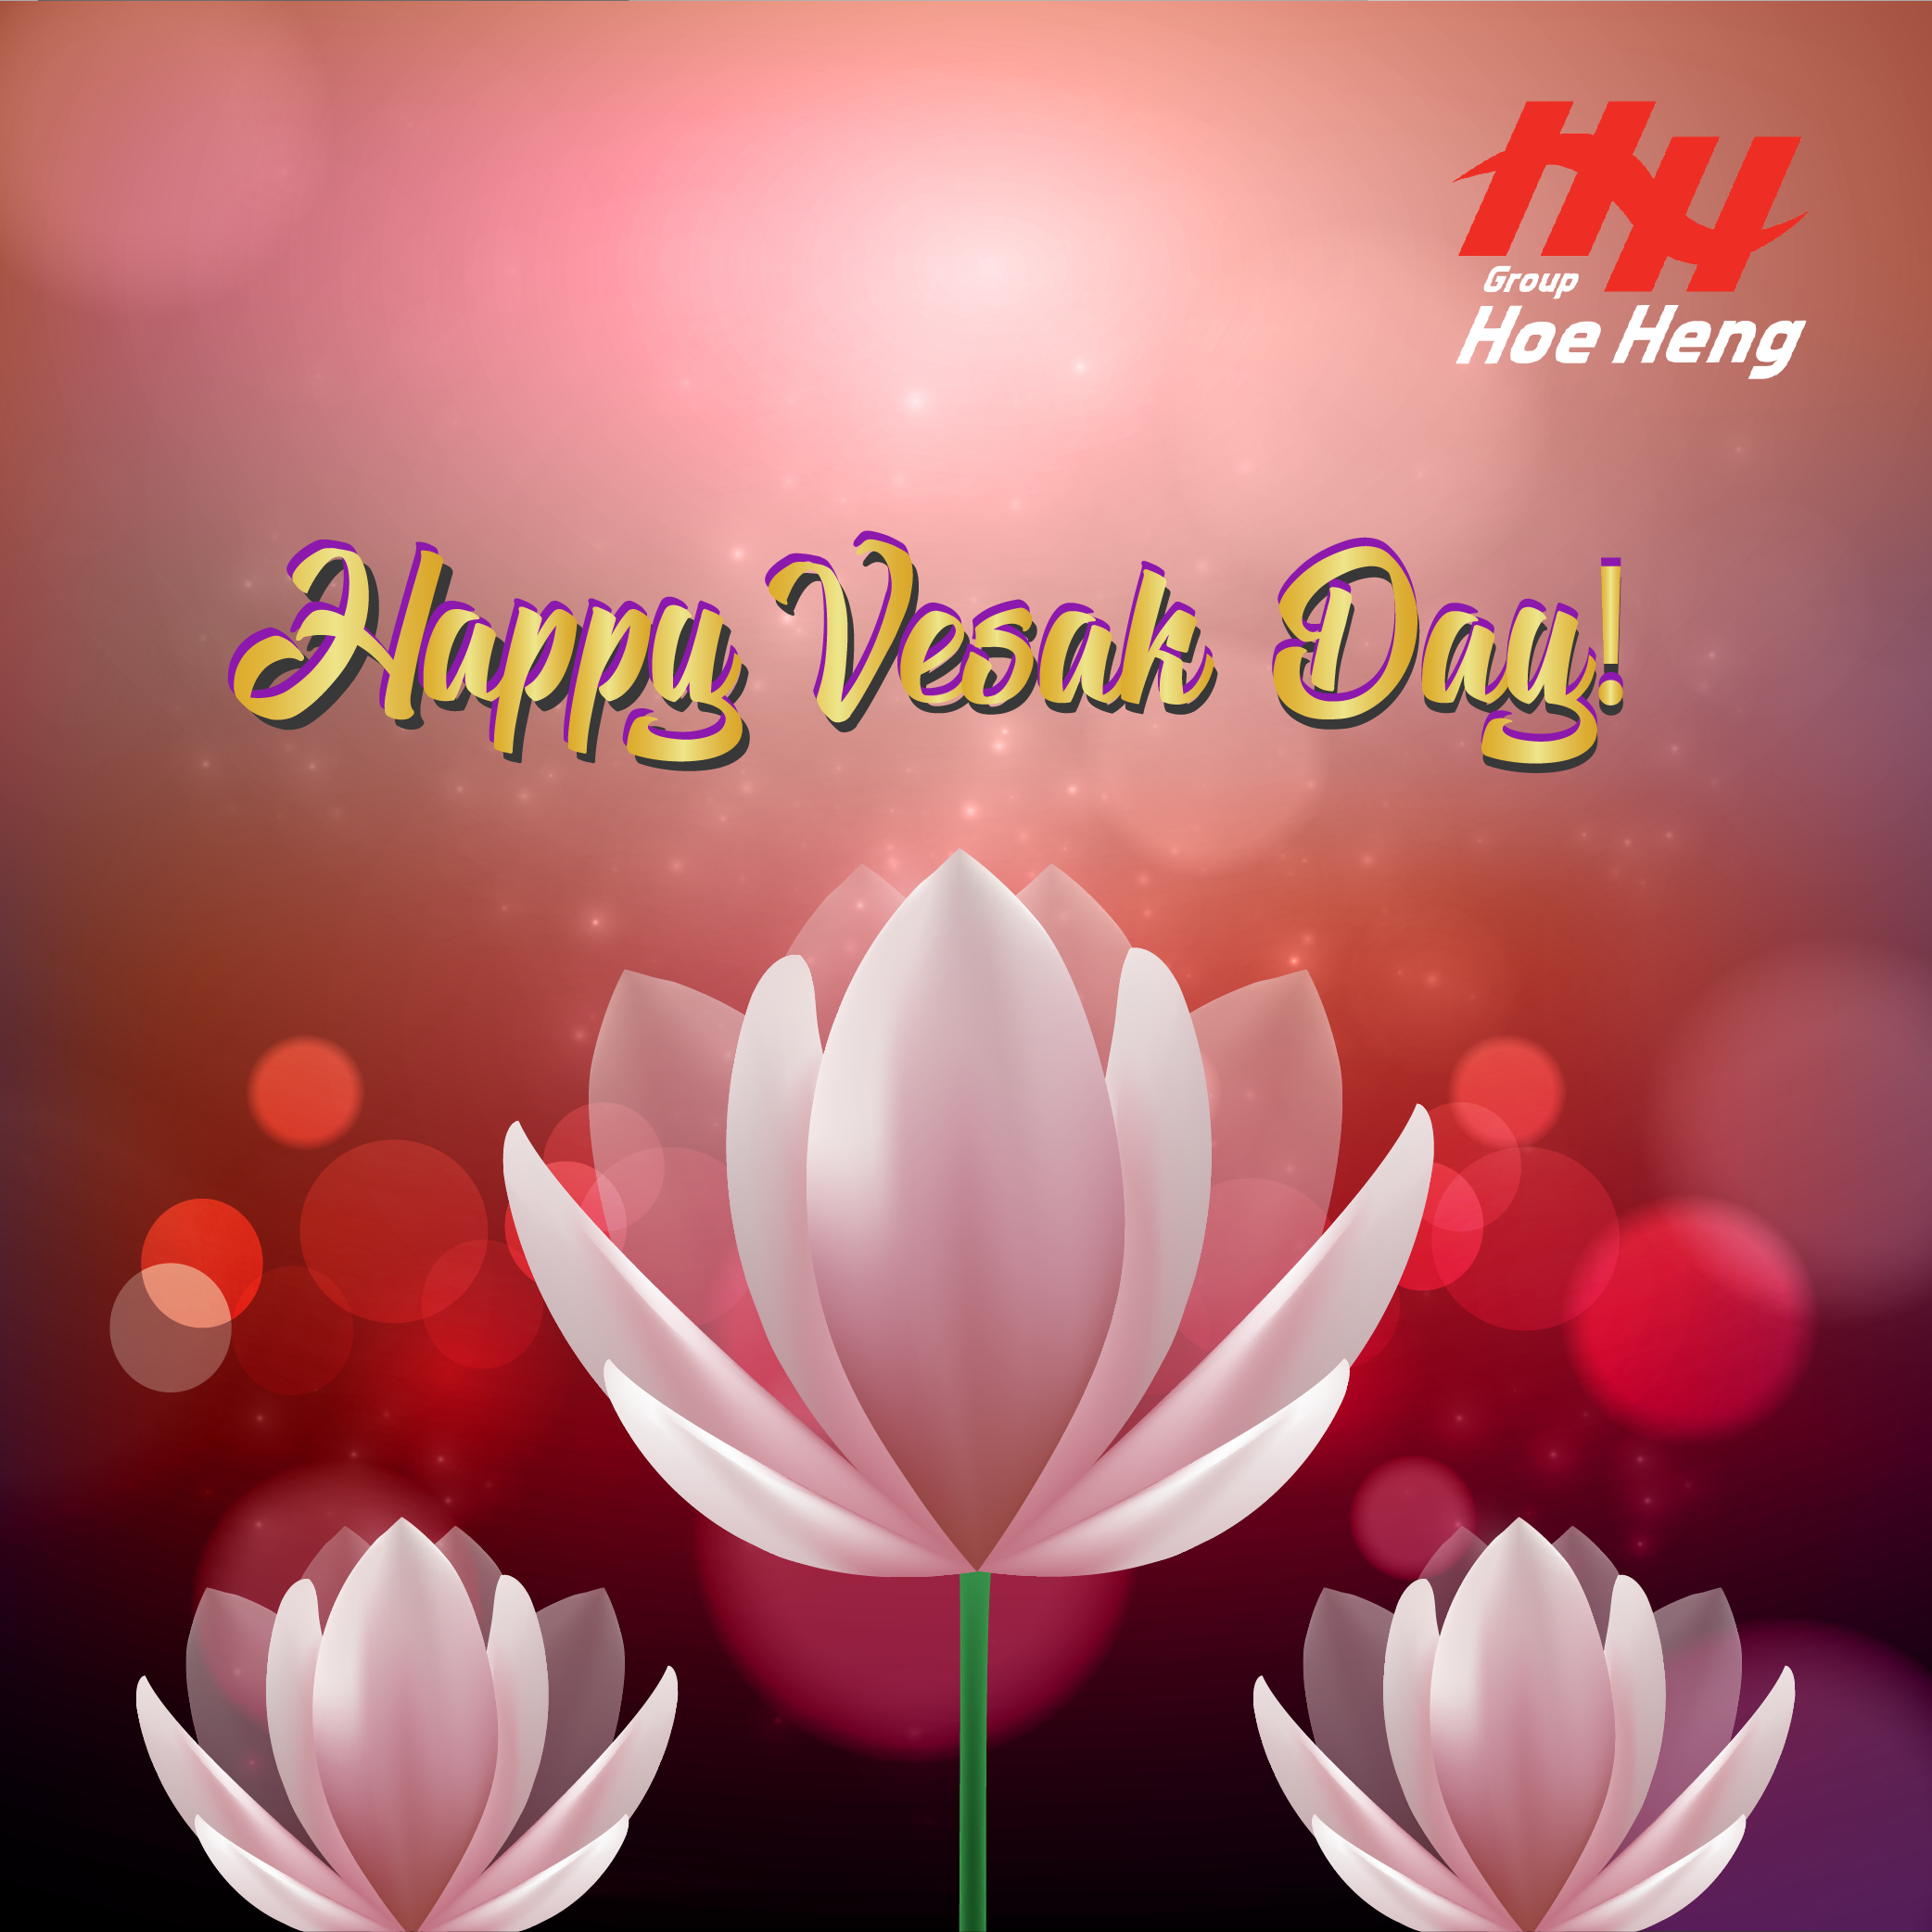 Happy Vesak Day!